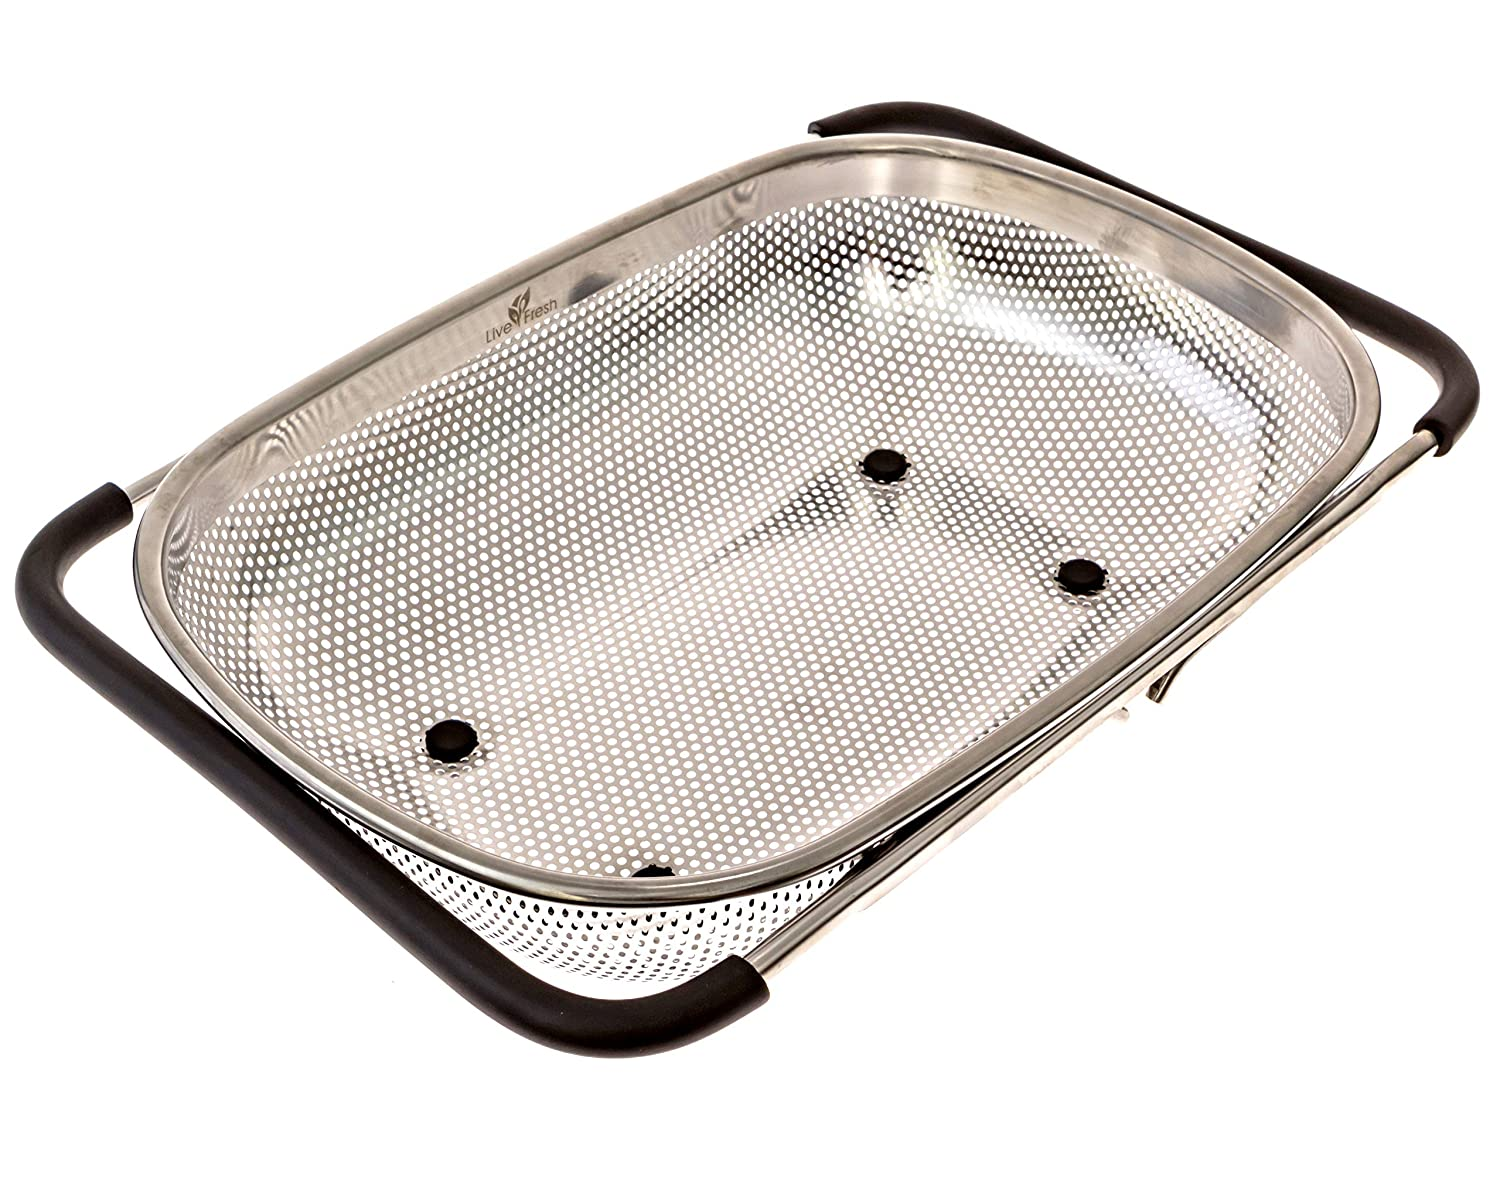 LiveFresh Over the Sink Micro-perforated Stainless Steel 4-Quart Colander with Non-Slip Handle Grips and Rubber Feet - Handles Extend to Fit Any Sink LF2017COX